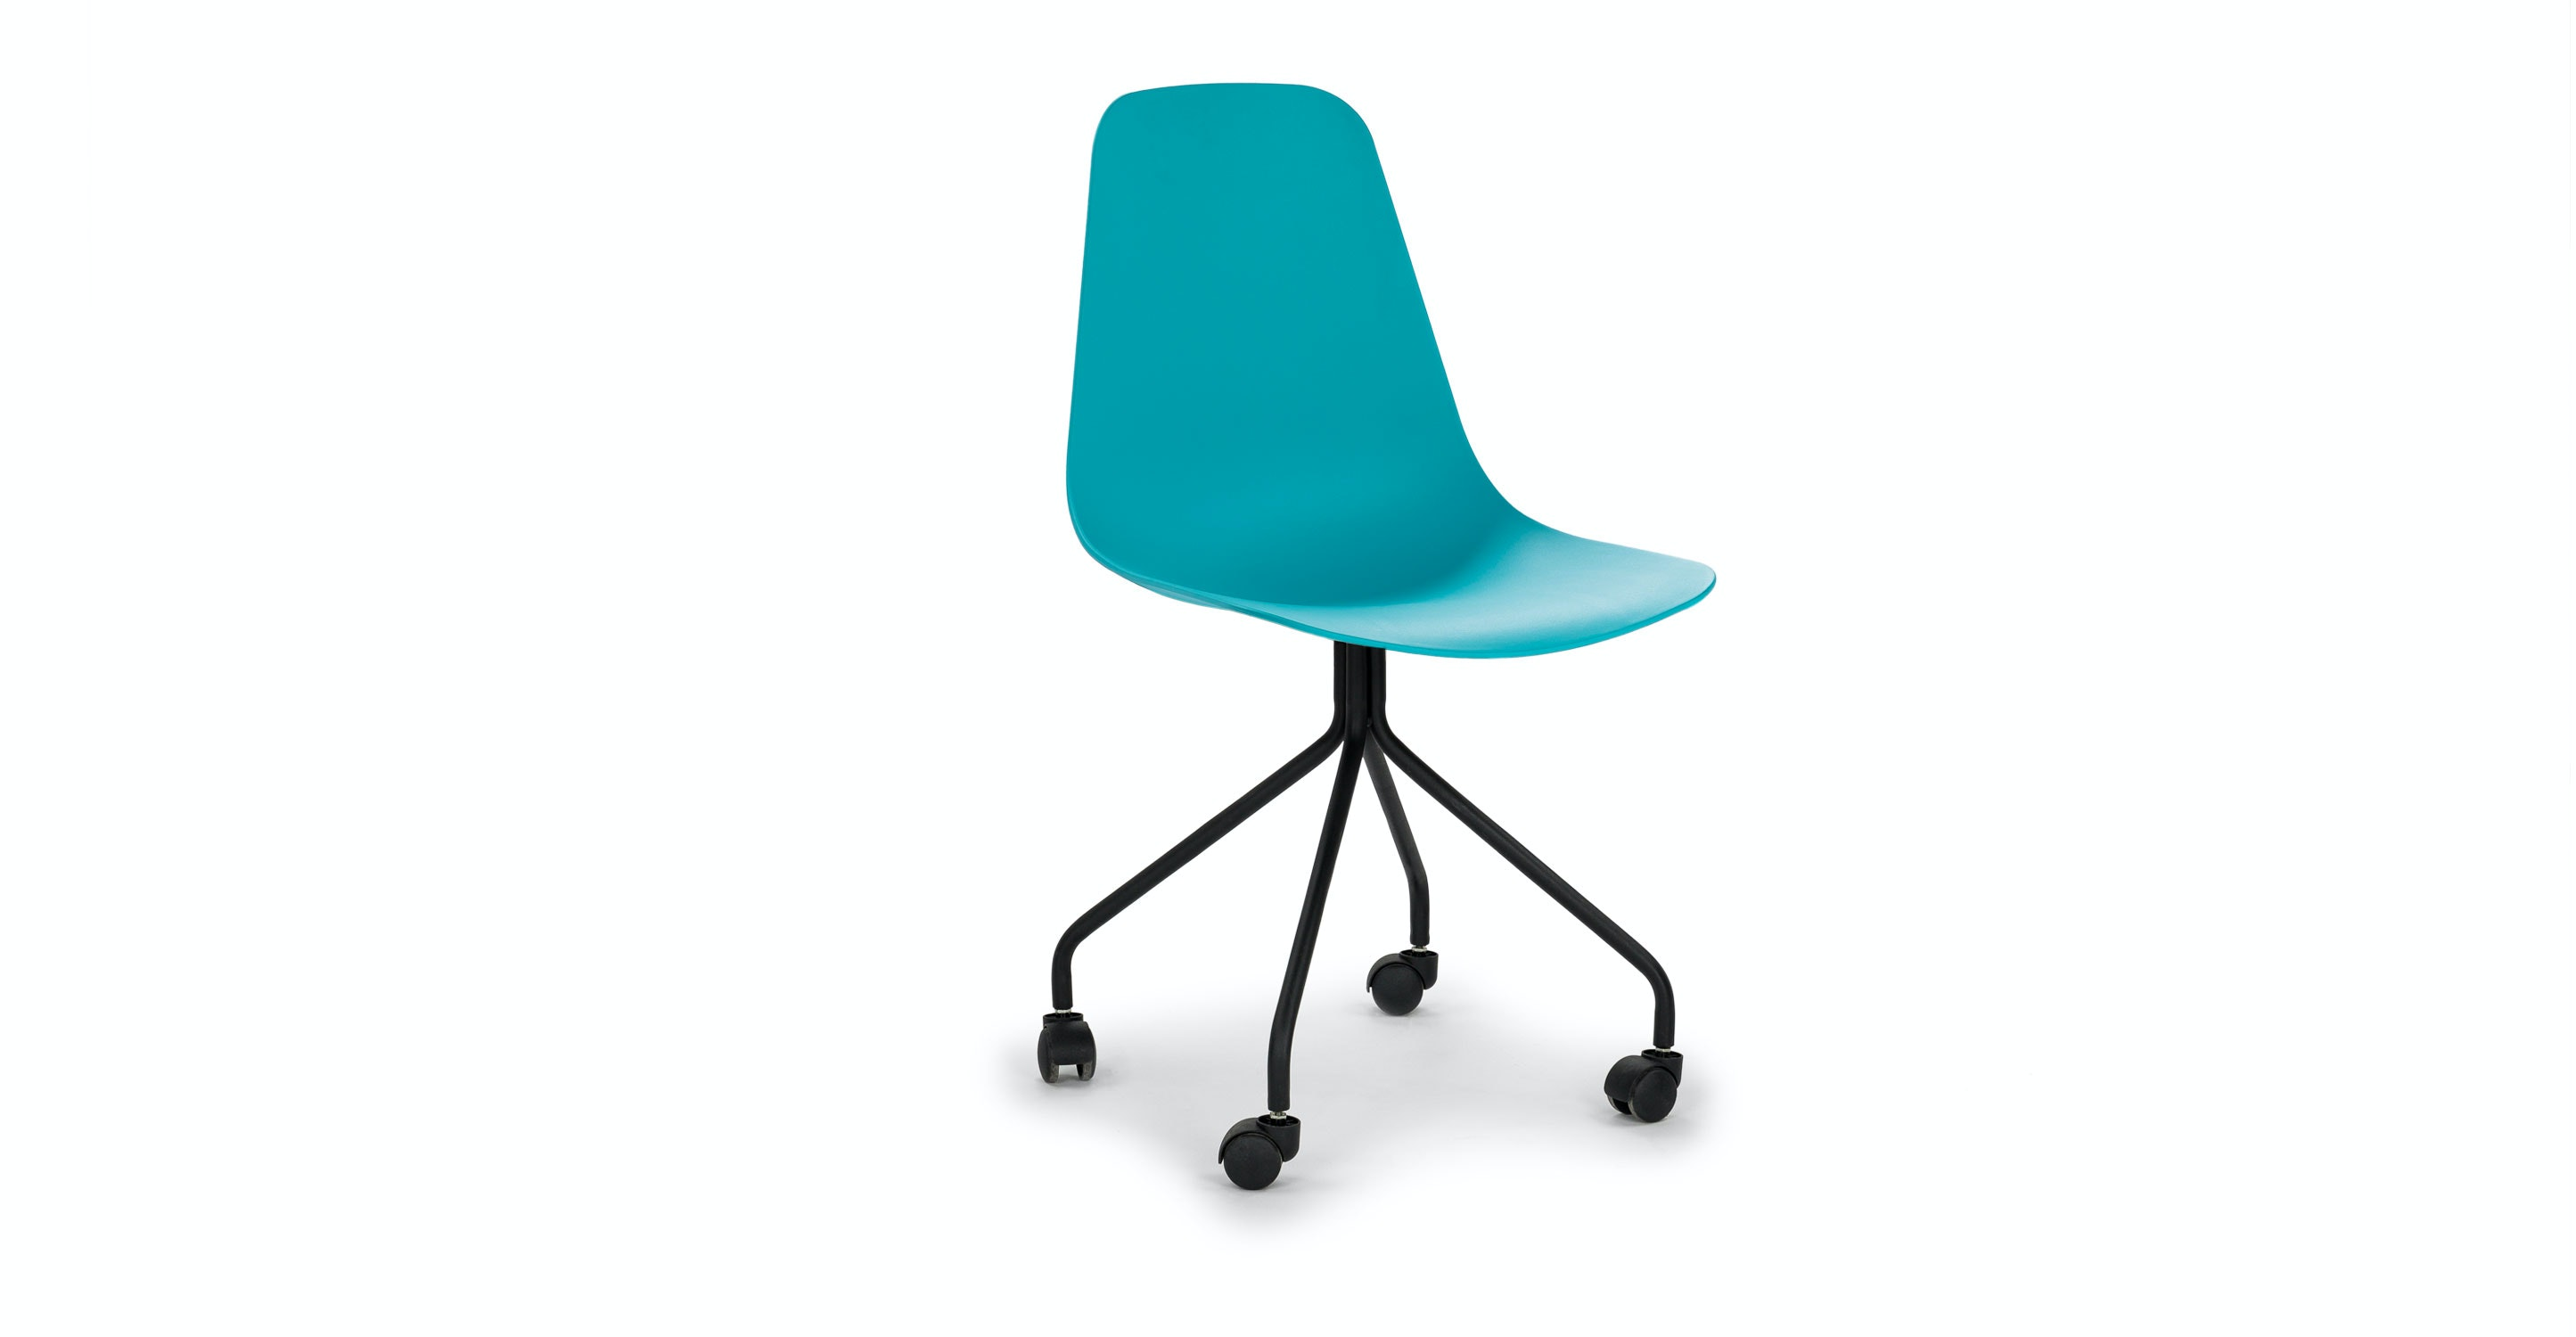 Svelti Poolside Aqua Office Chair   Chairs   Article | Modern, Mid Century  And Scandinavian Furniture